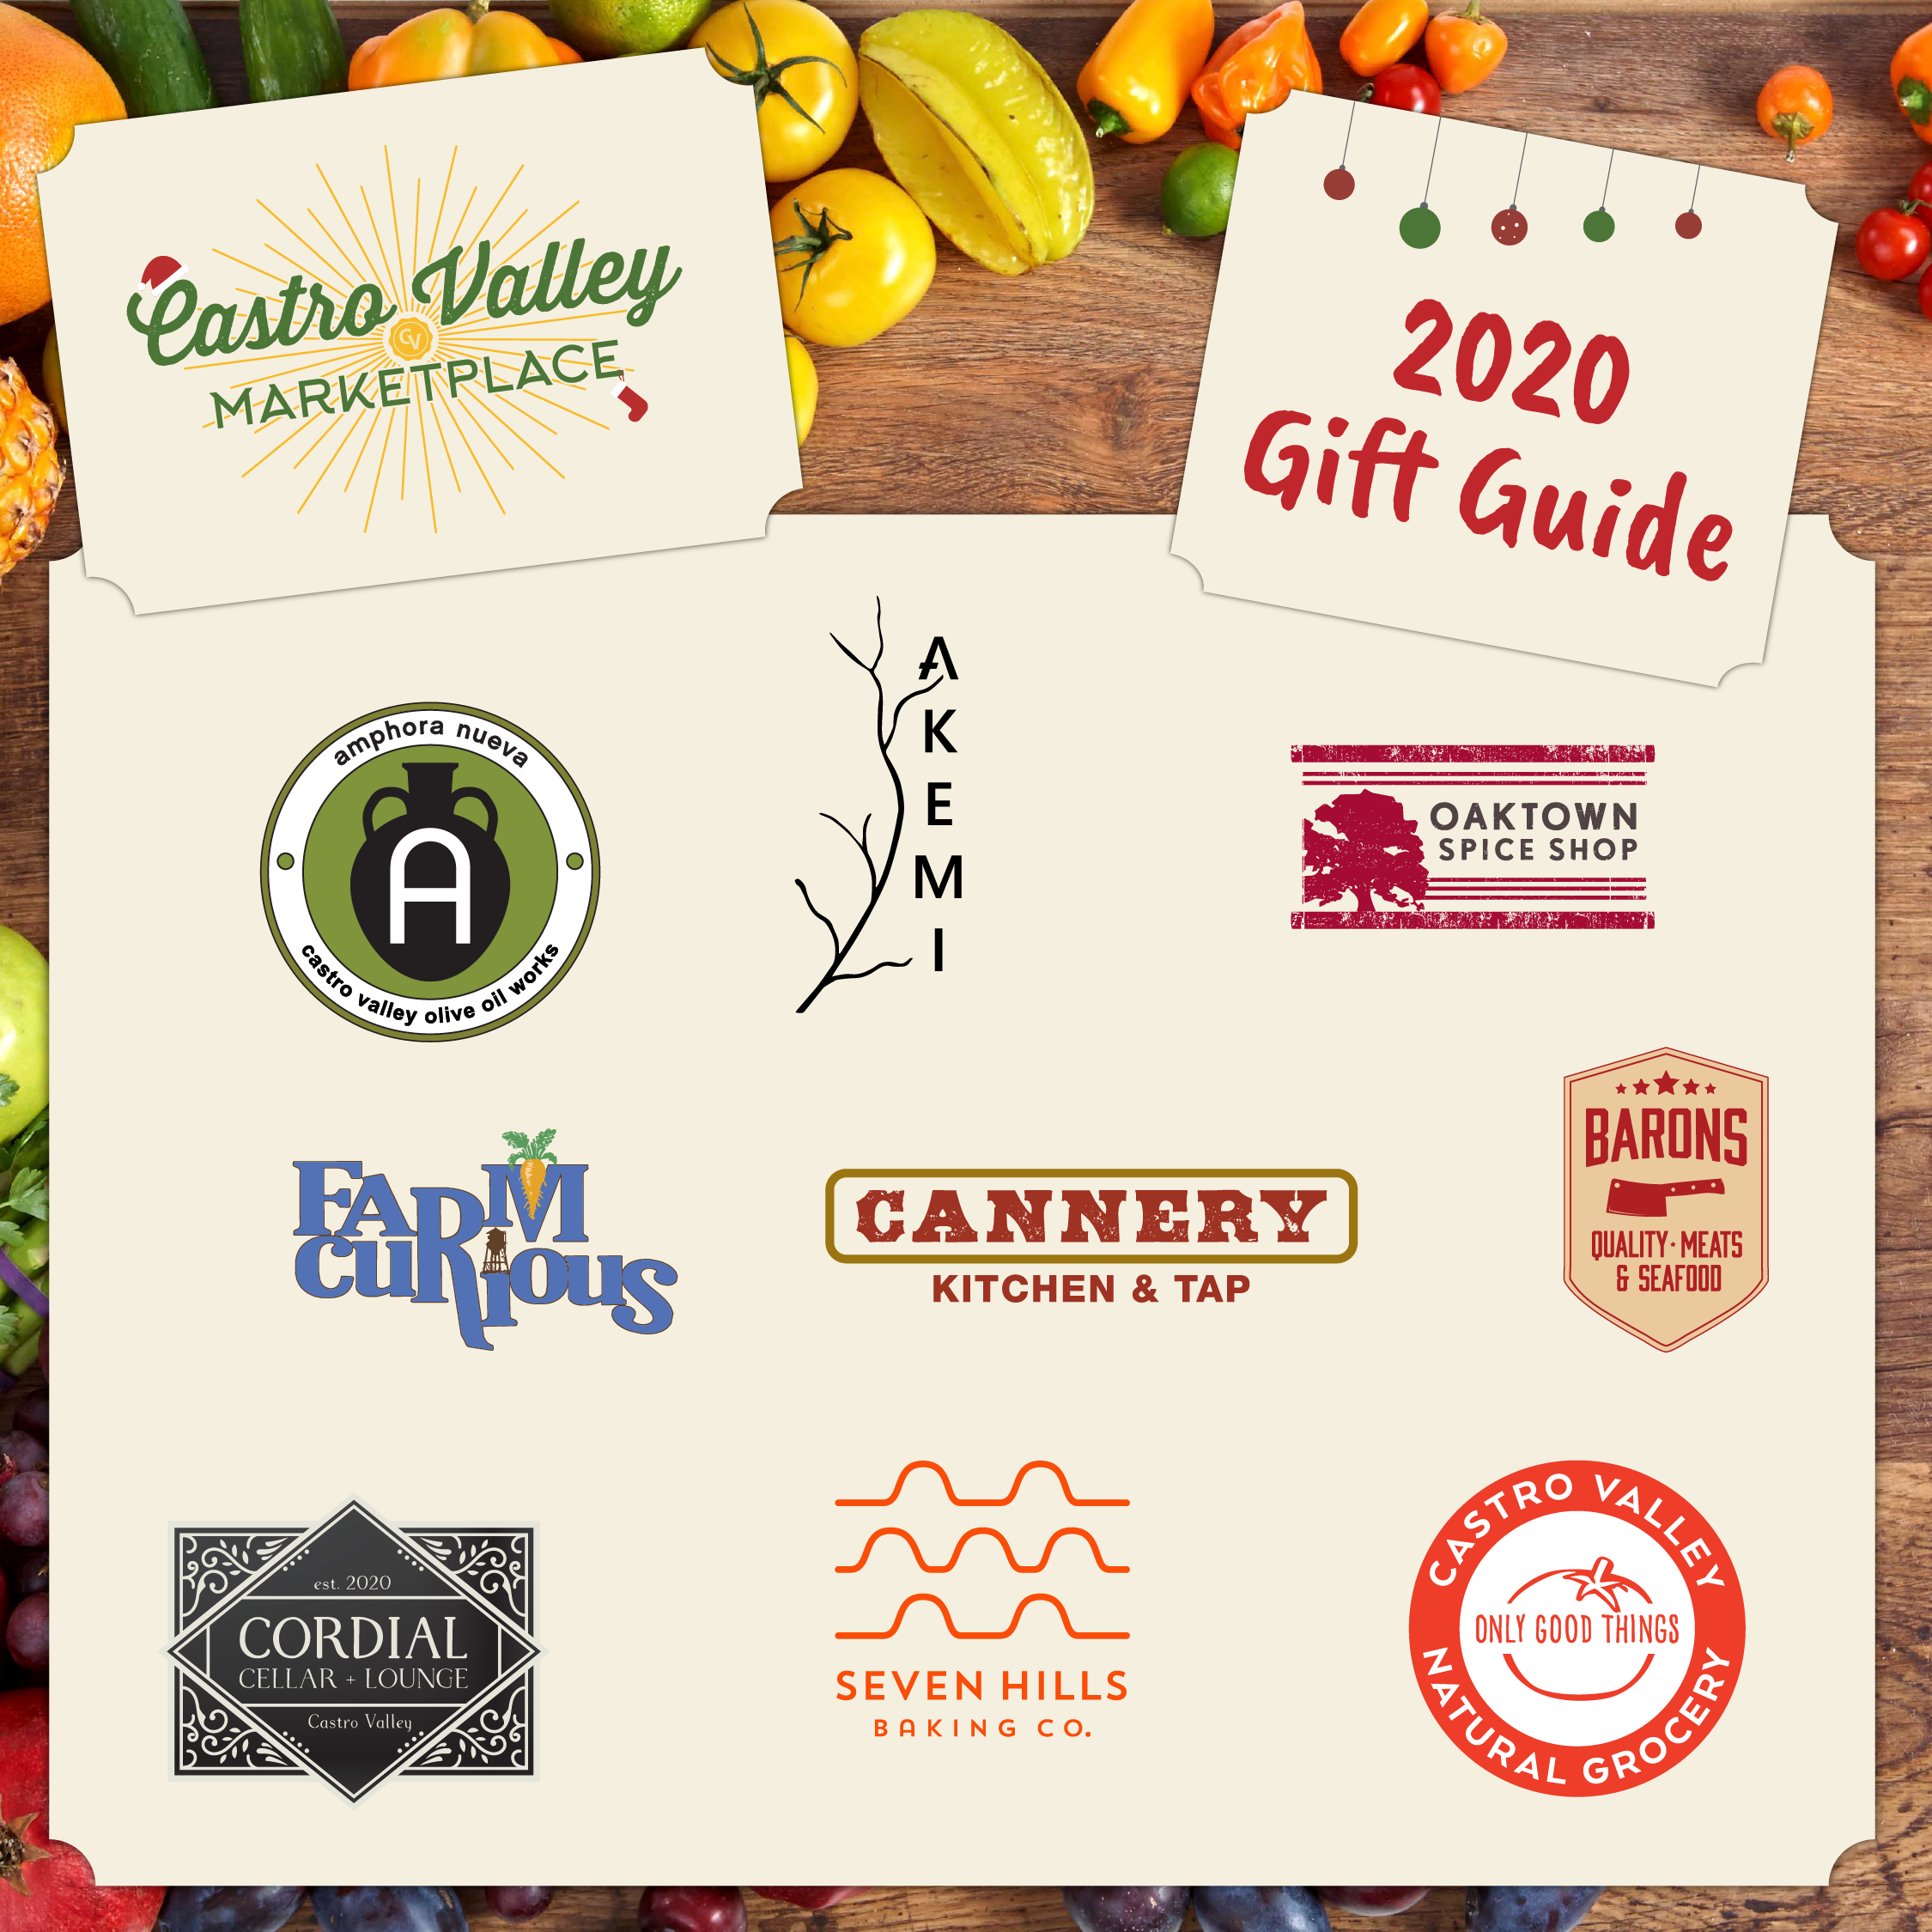 Castro Valley Marketplace Gift Guide 2020